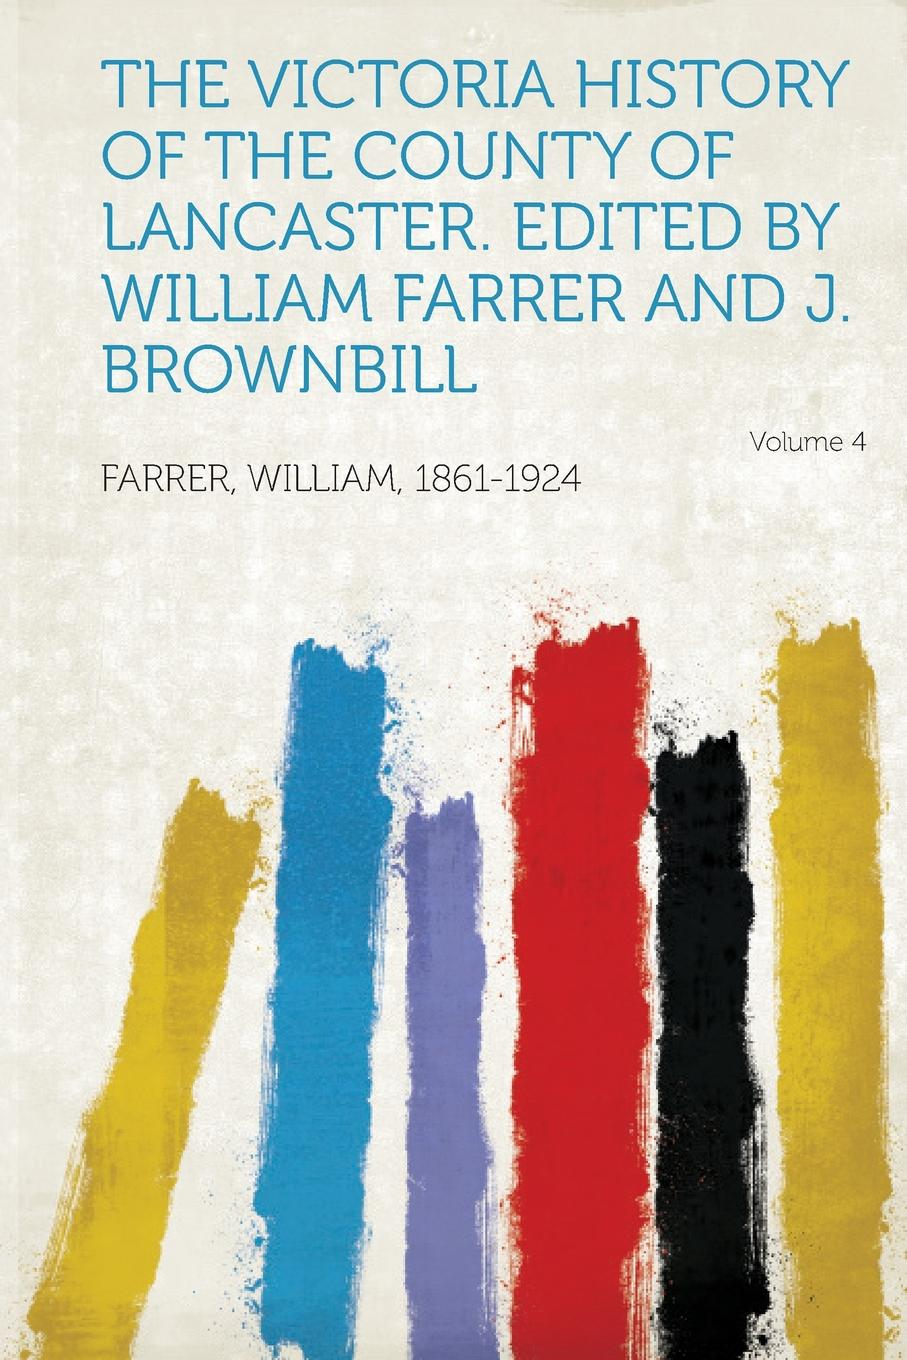 The Victoria History of the County of Lancaster. Edited by William Farrer and J. Brownbill Volume 4